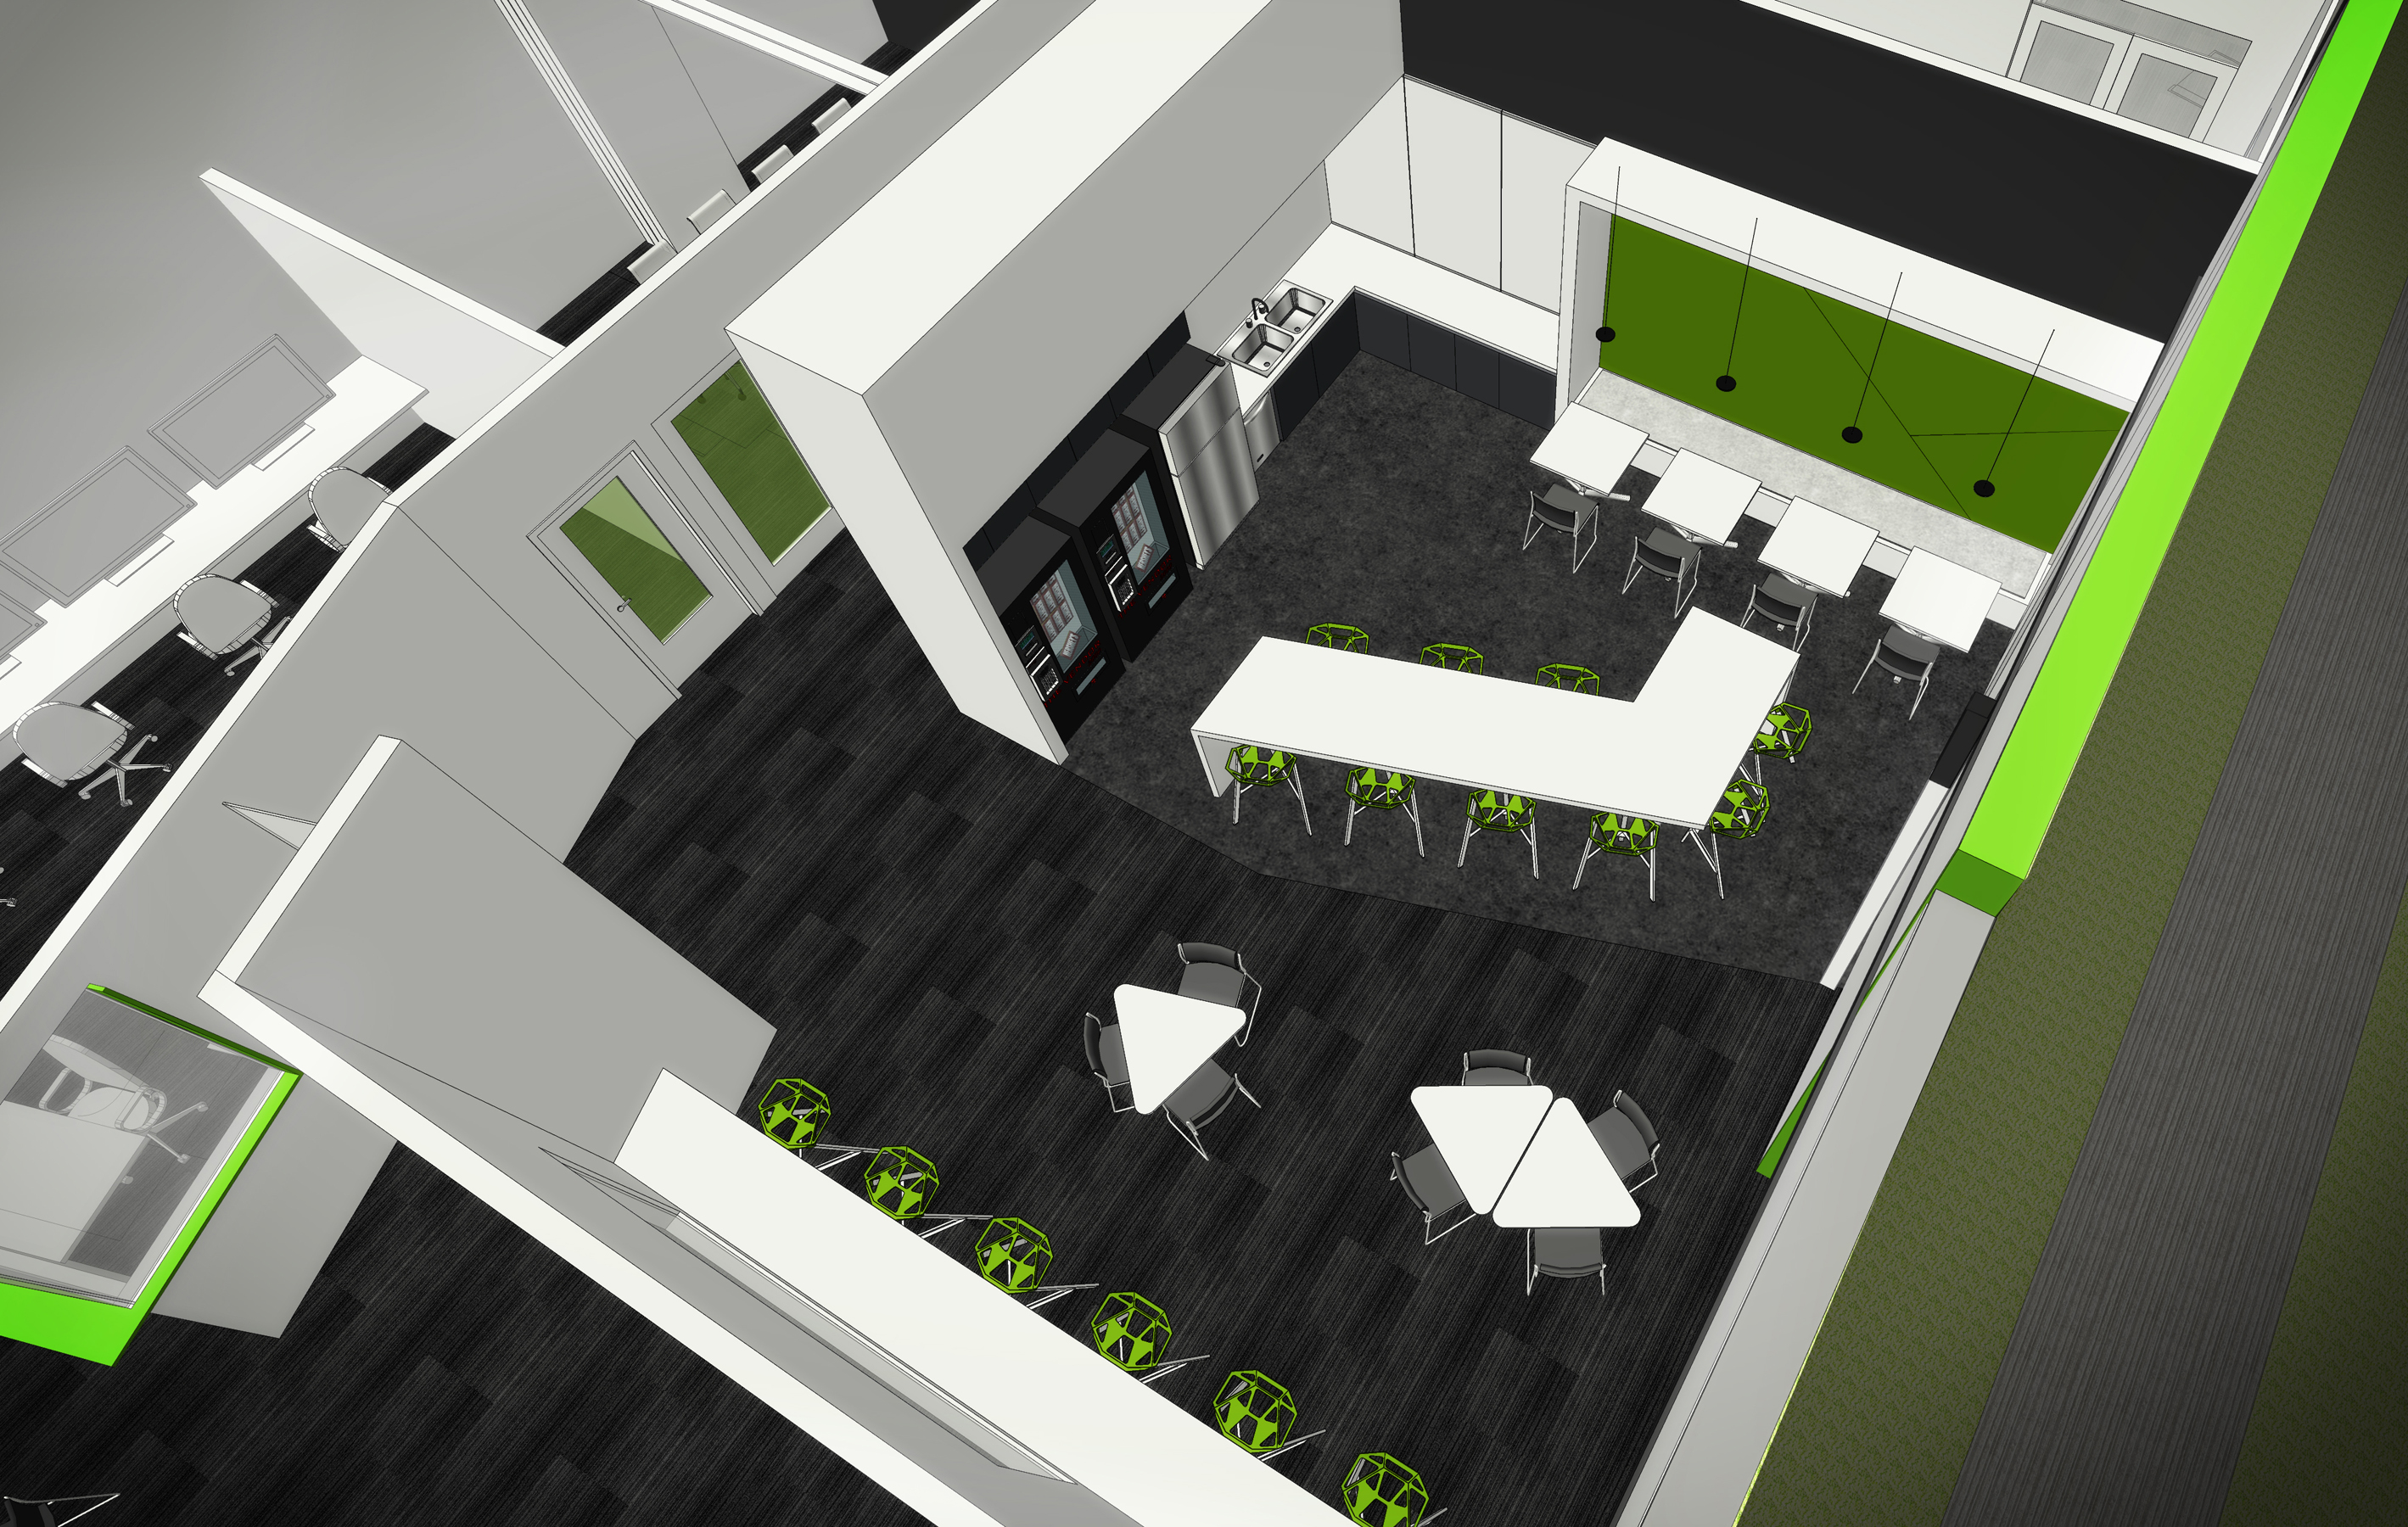 05 Green House Data Center Cheyenne open studio architecture - cafe rendering